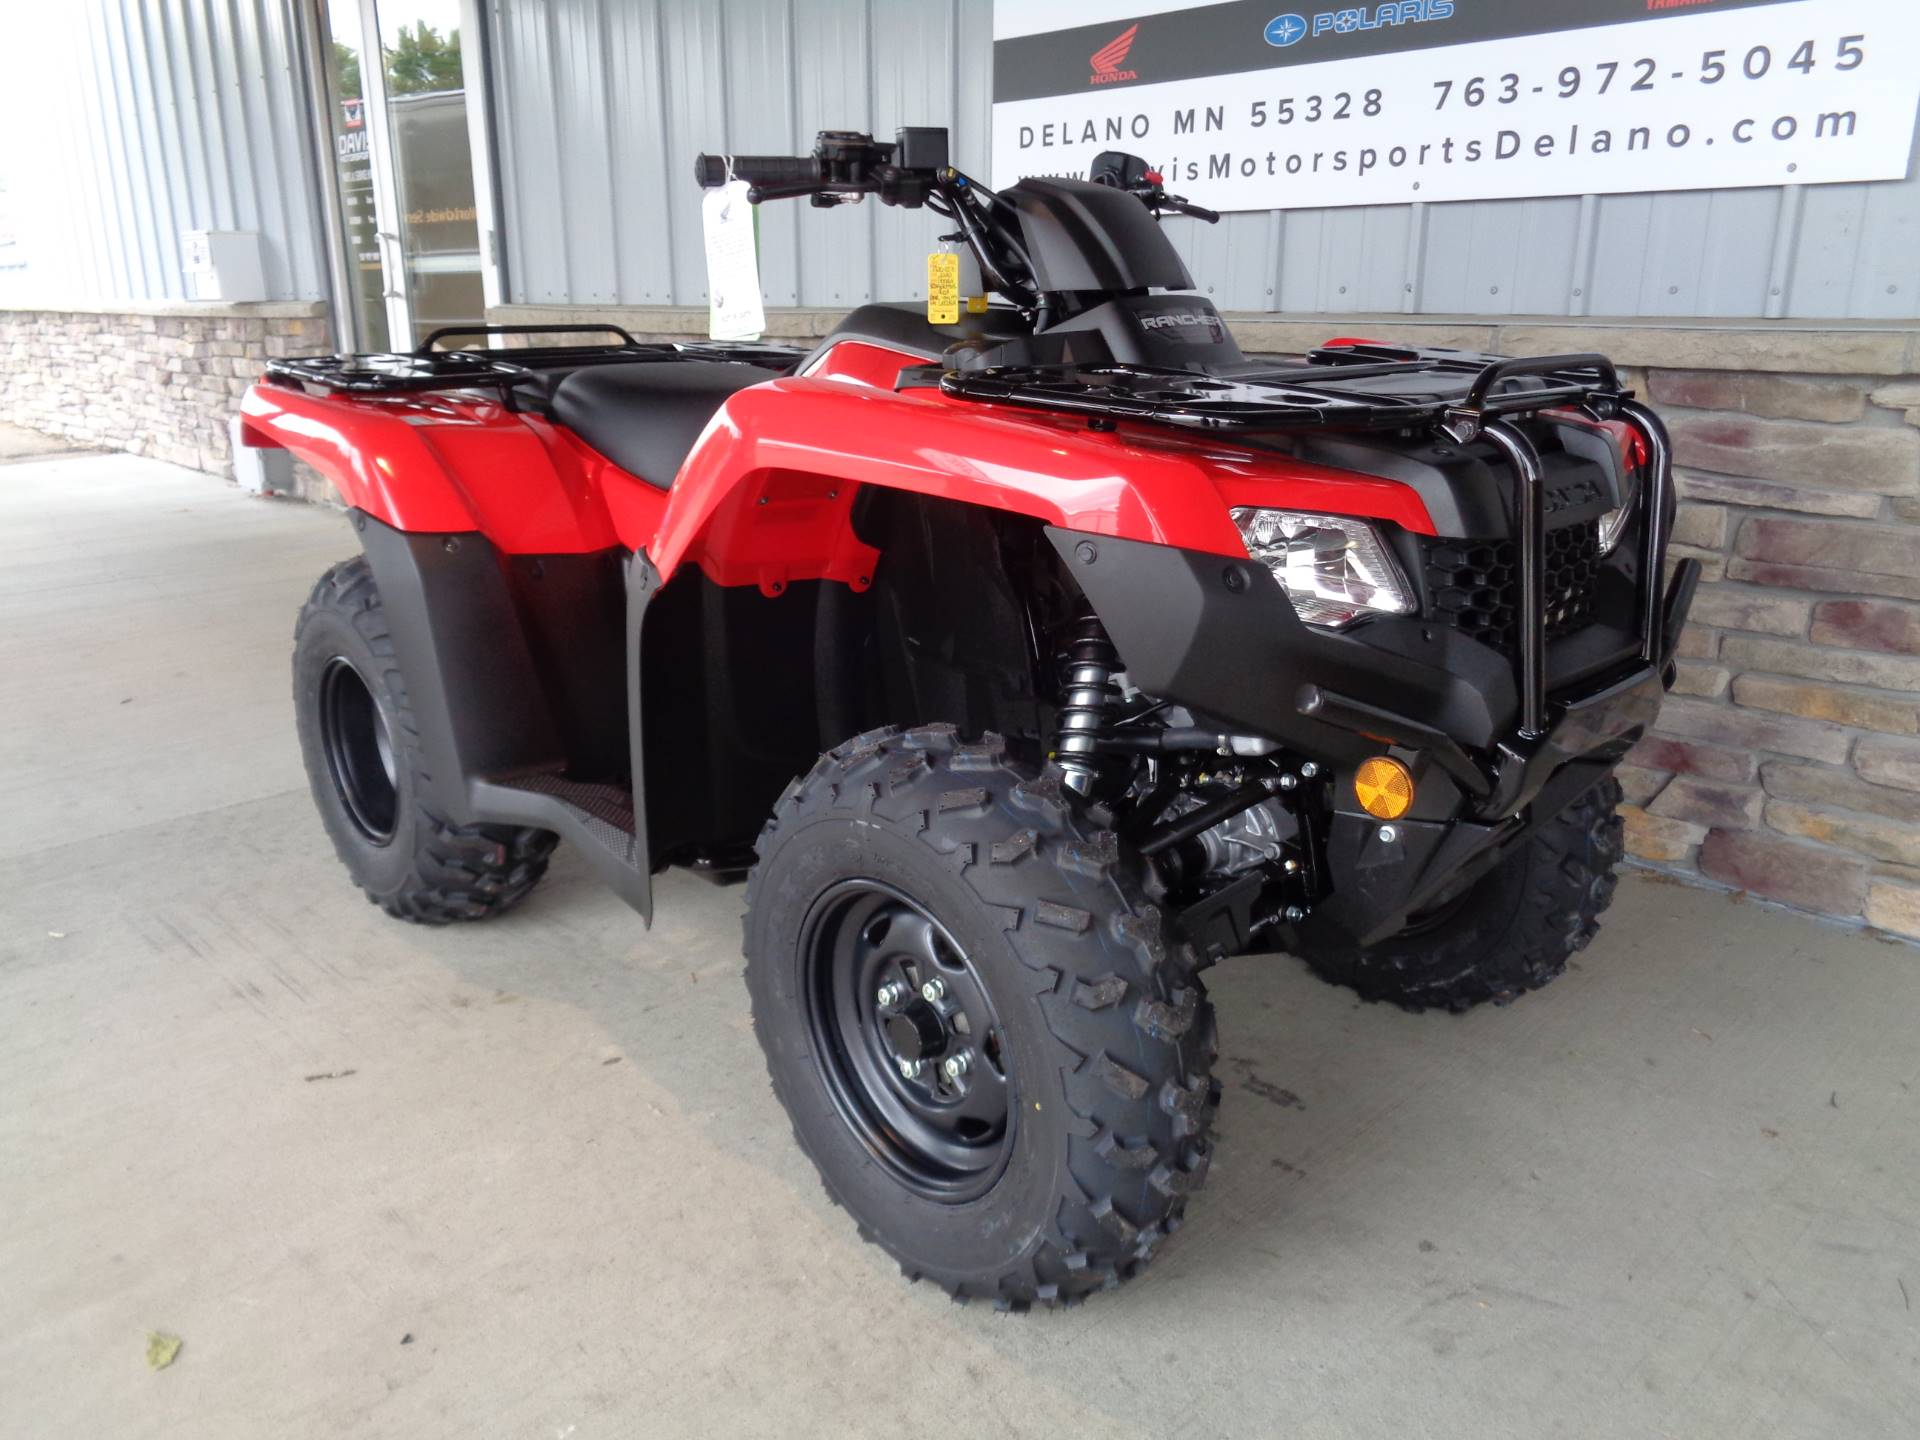 2020 Honda FourTrax Rancher 4x4 in Delano, Minnesota - Photo 3